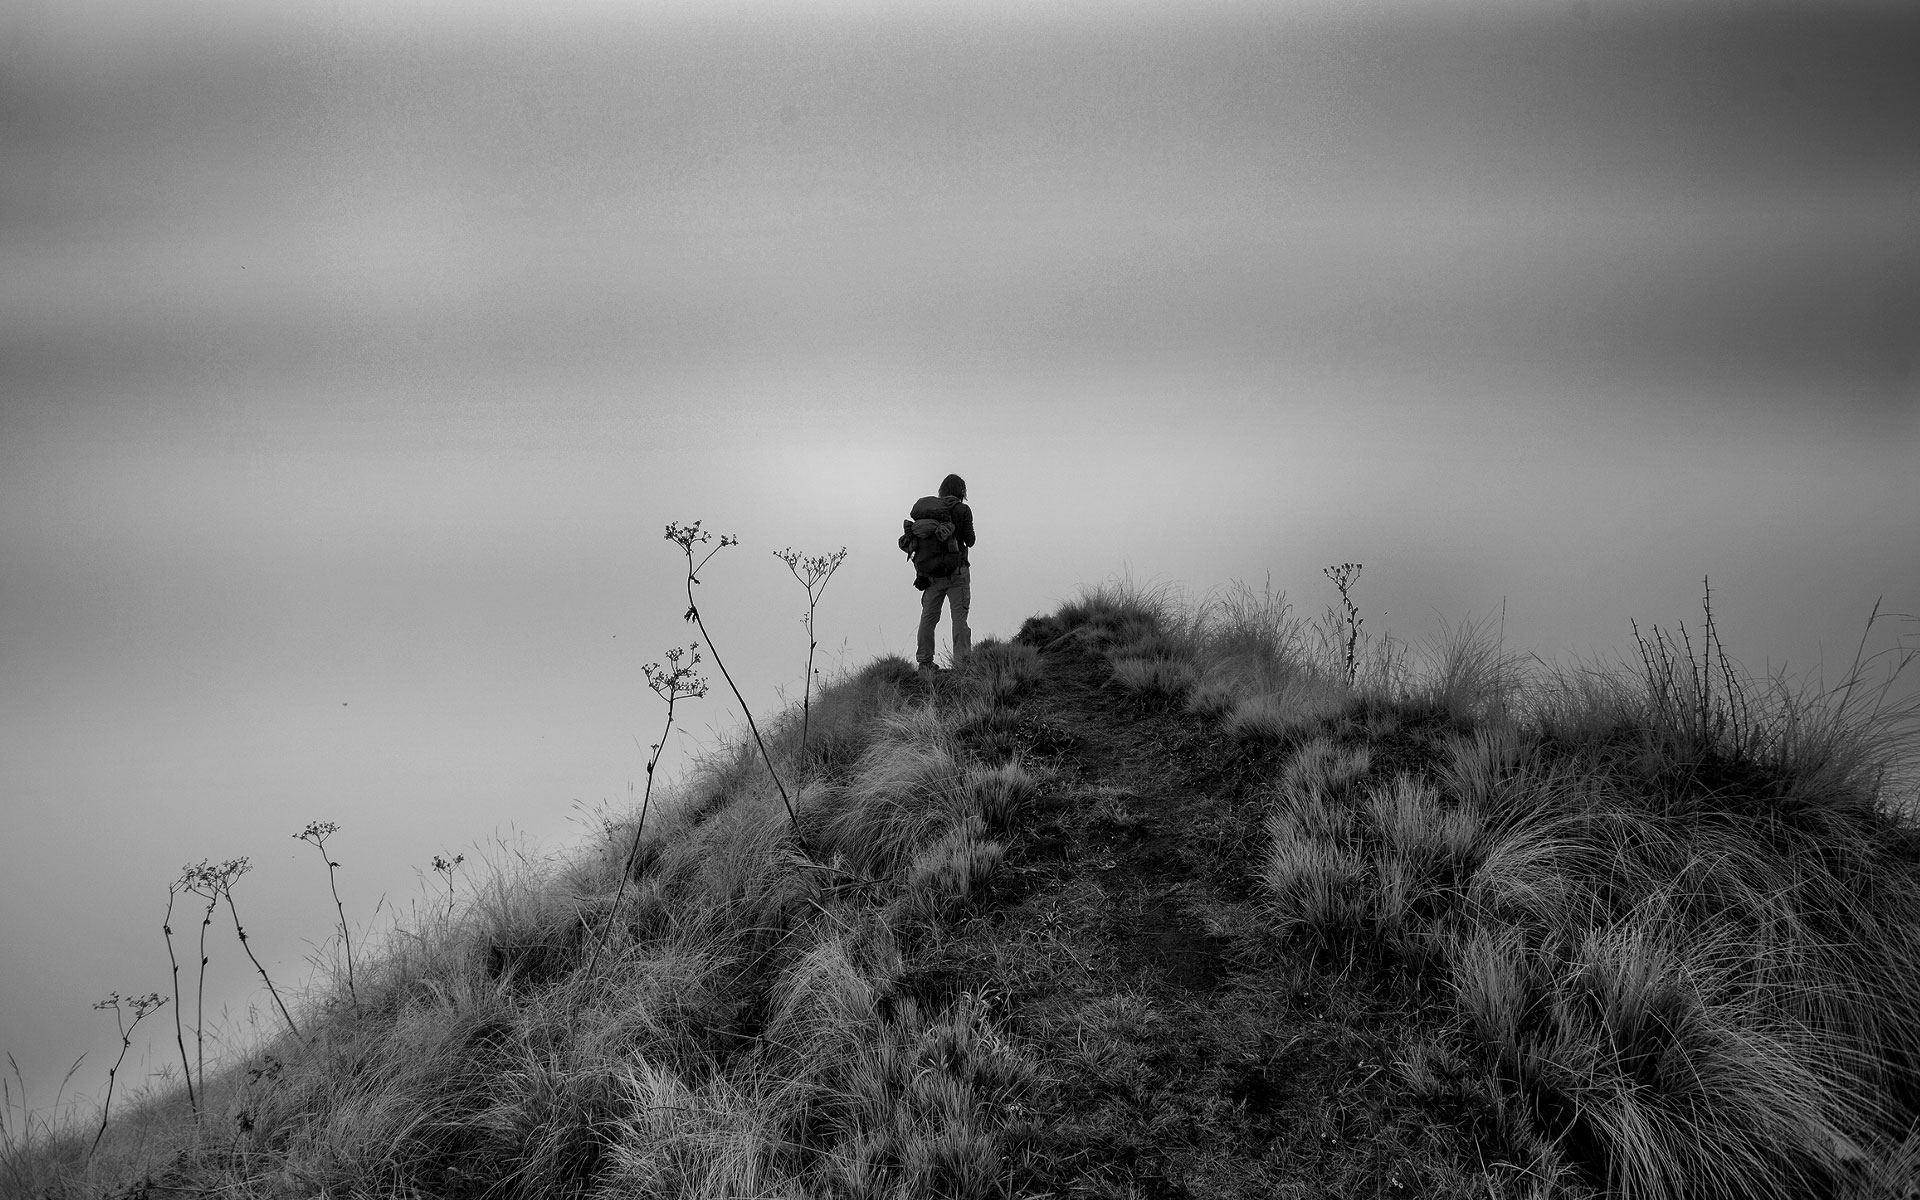 The Hiker by Amplitude Films